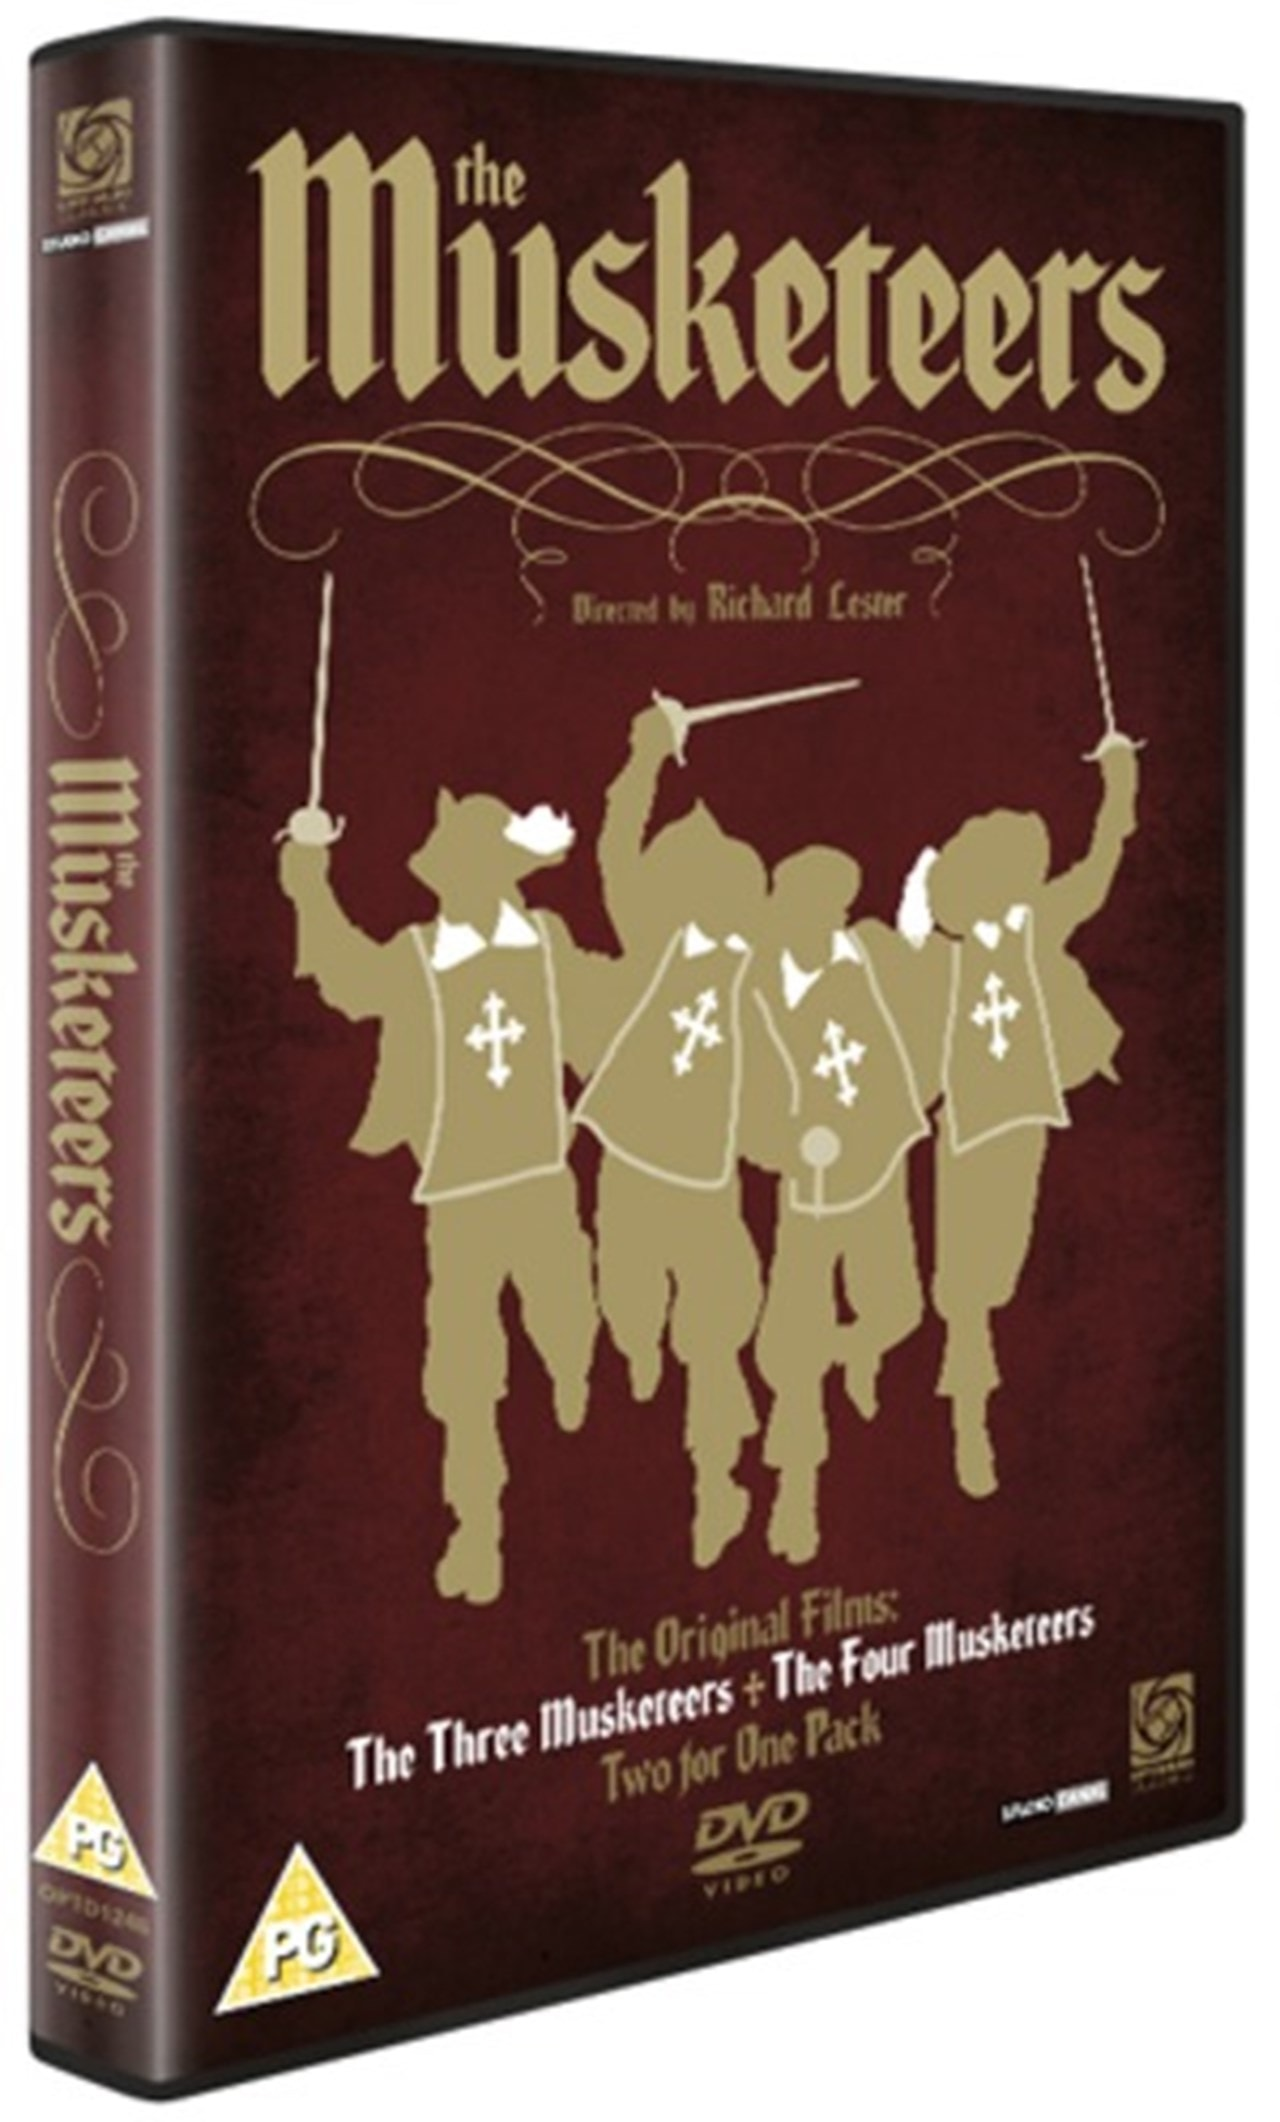 The Three Musketeers/The Four Musketeers - 1